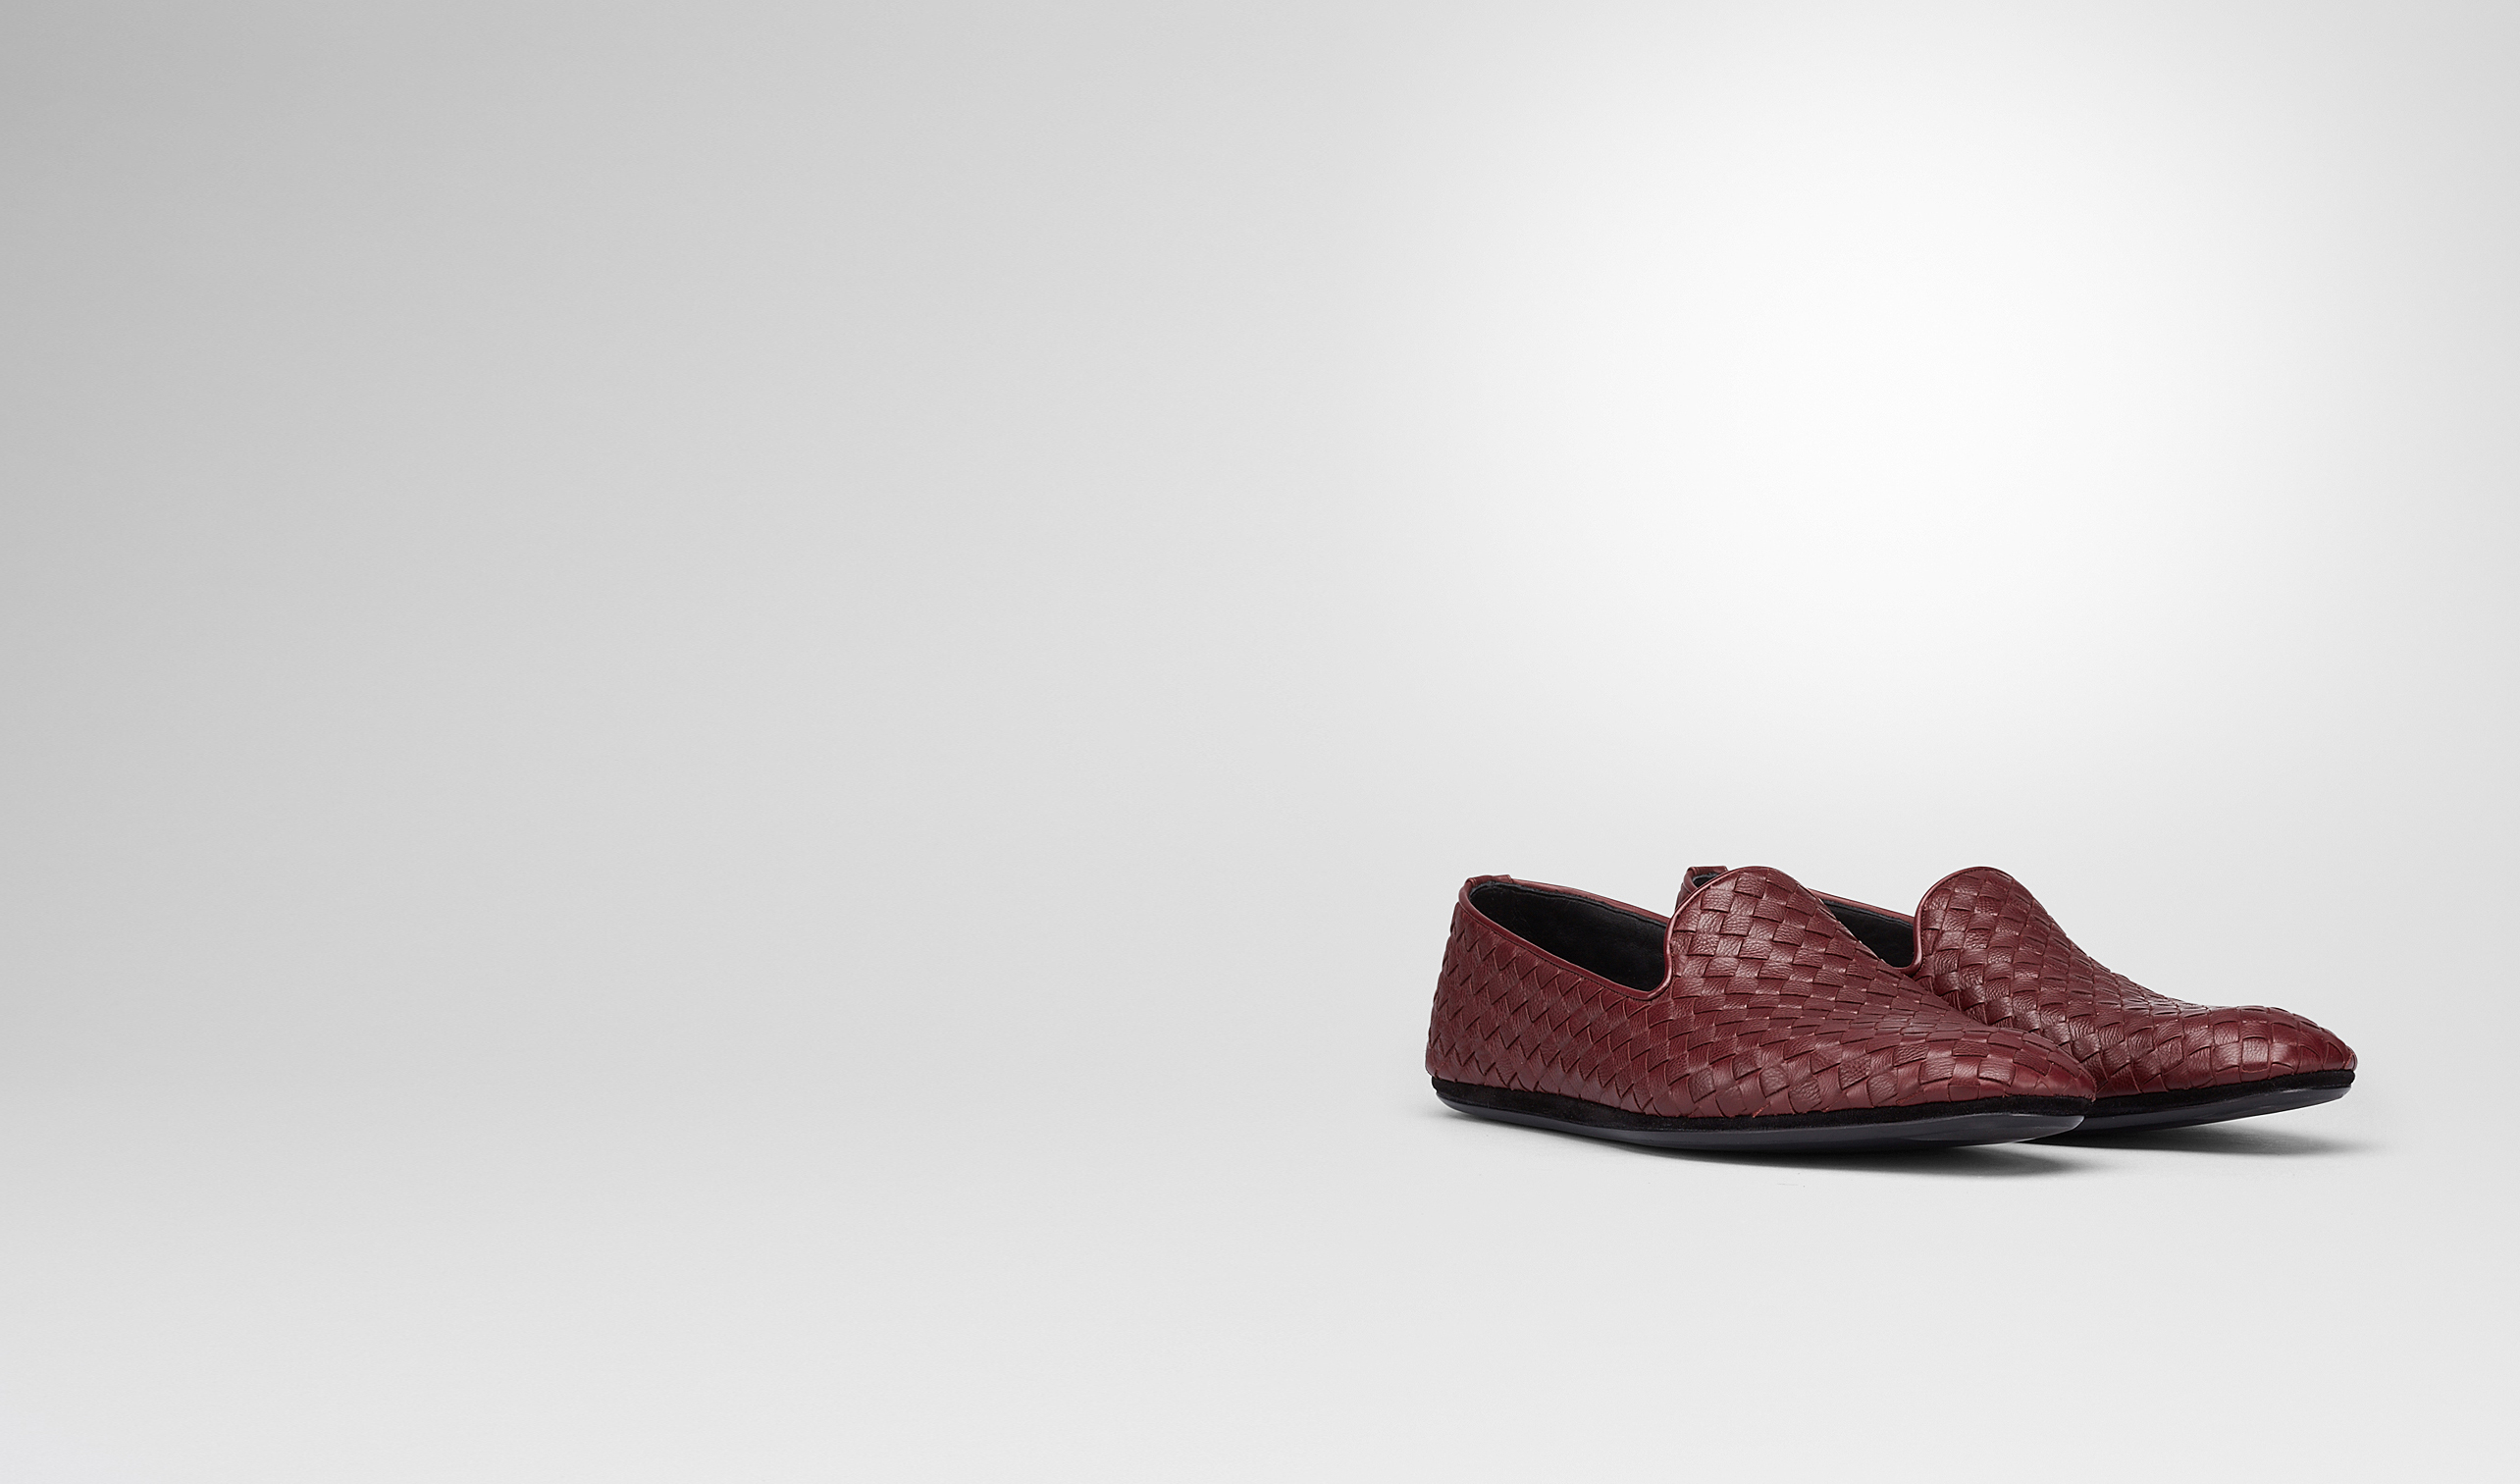 BOTTEGA VENETA Mocassino o pantofola U OUTDOOR SLIPPER AUBERGINE IN FOULARD CALF INTRECCIATO pl